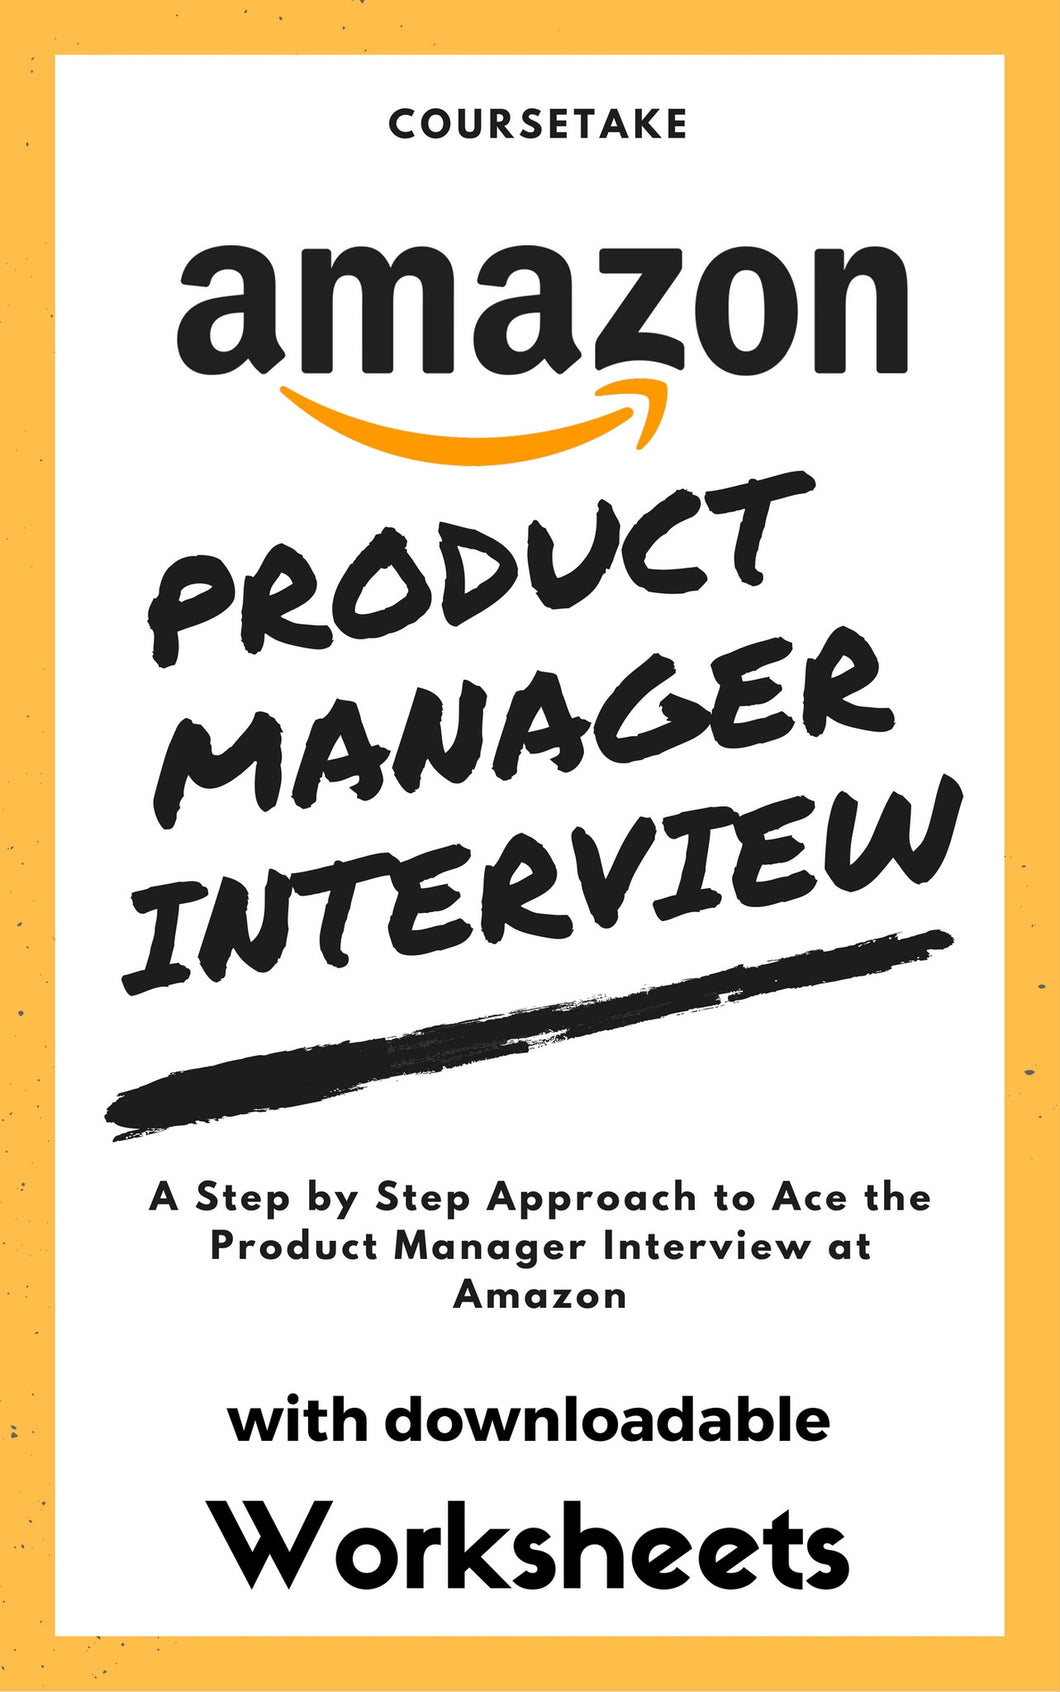 Amazon Product Manager Interview Preparation Guide